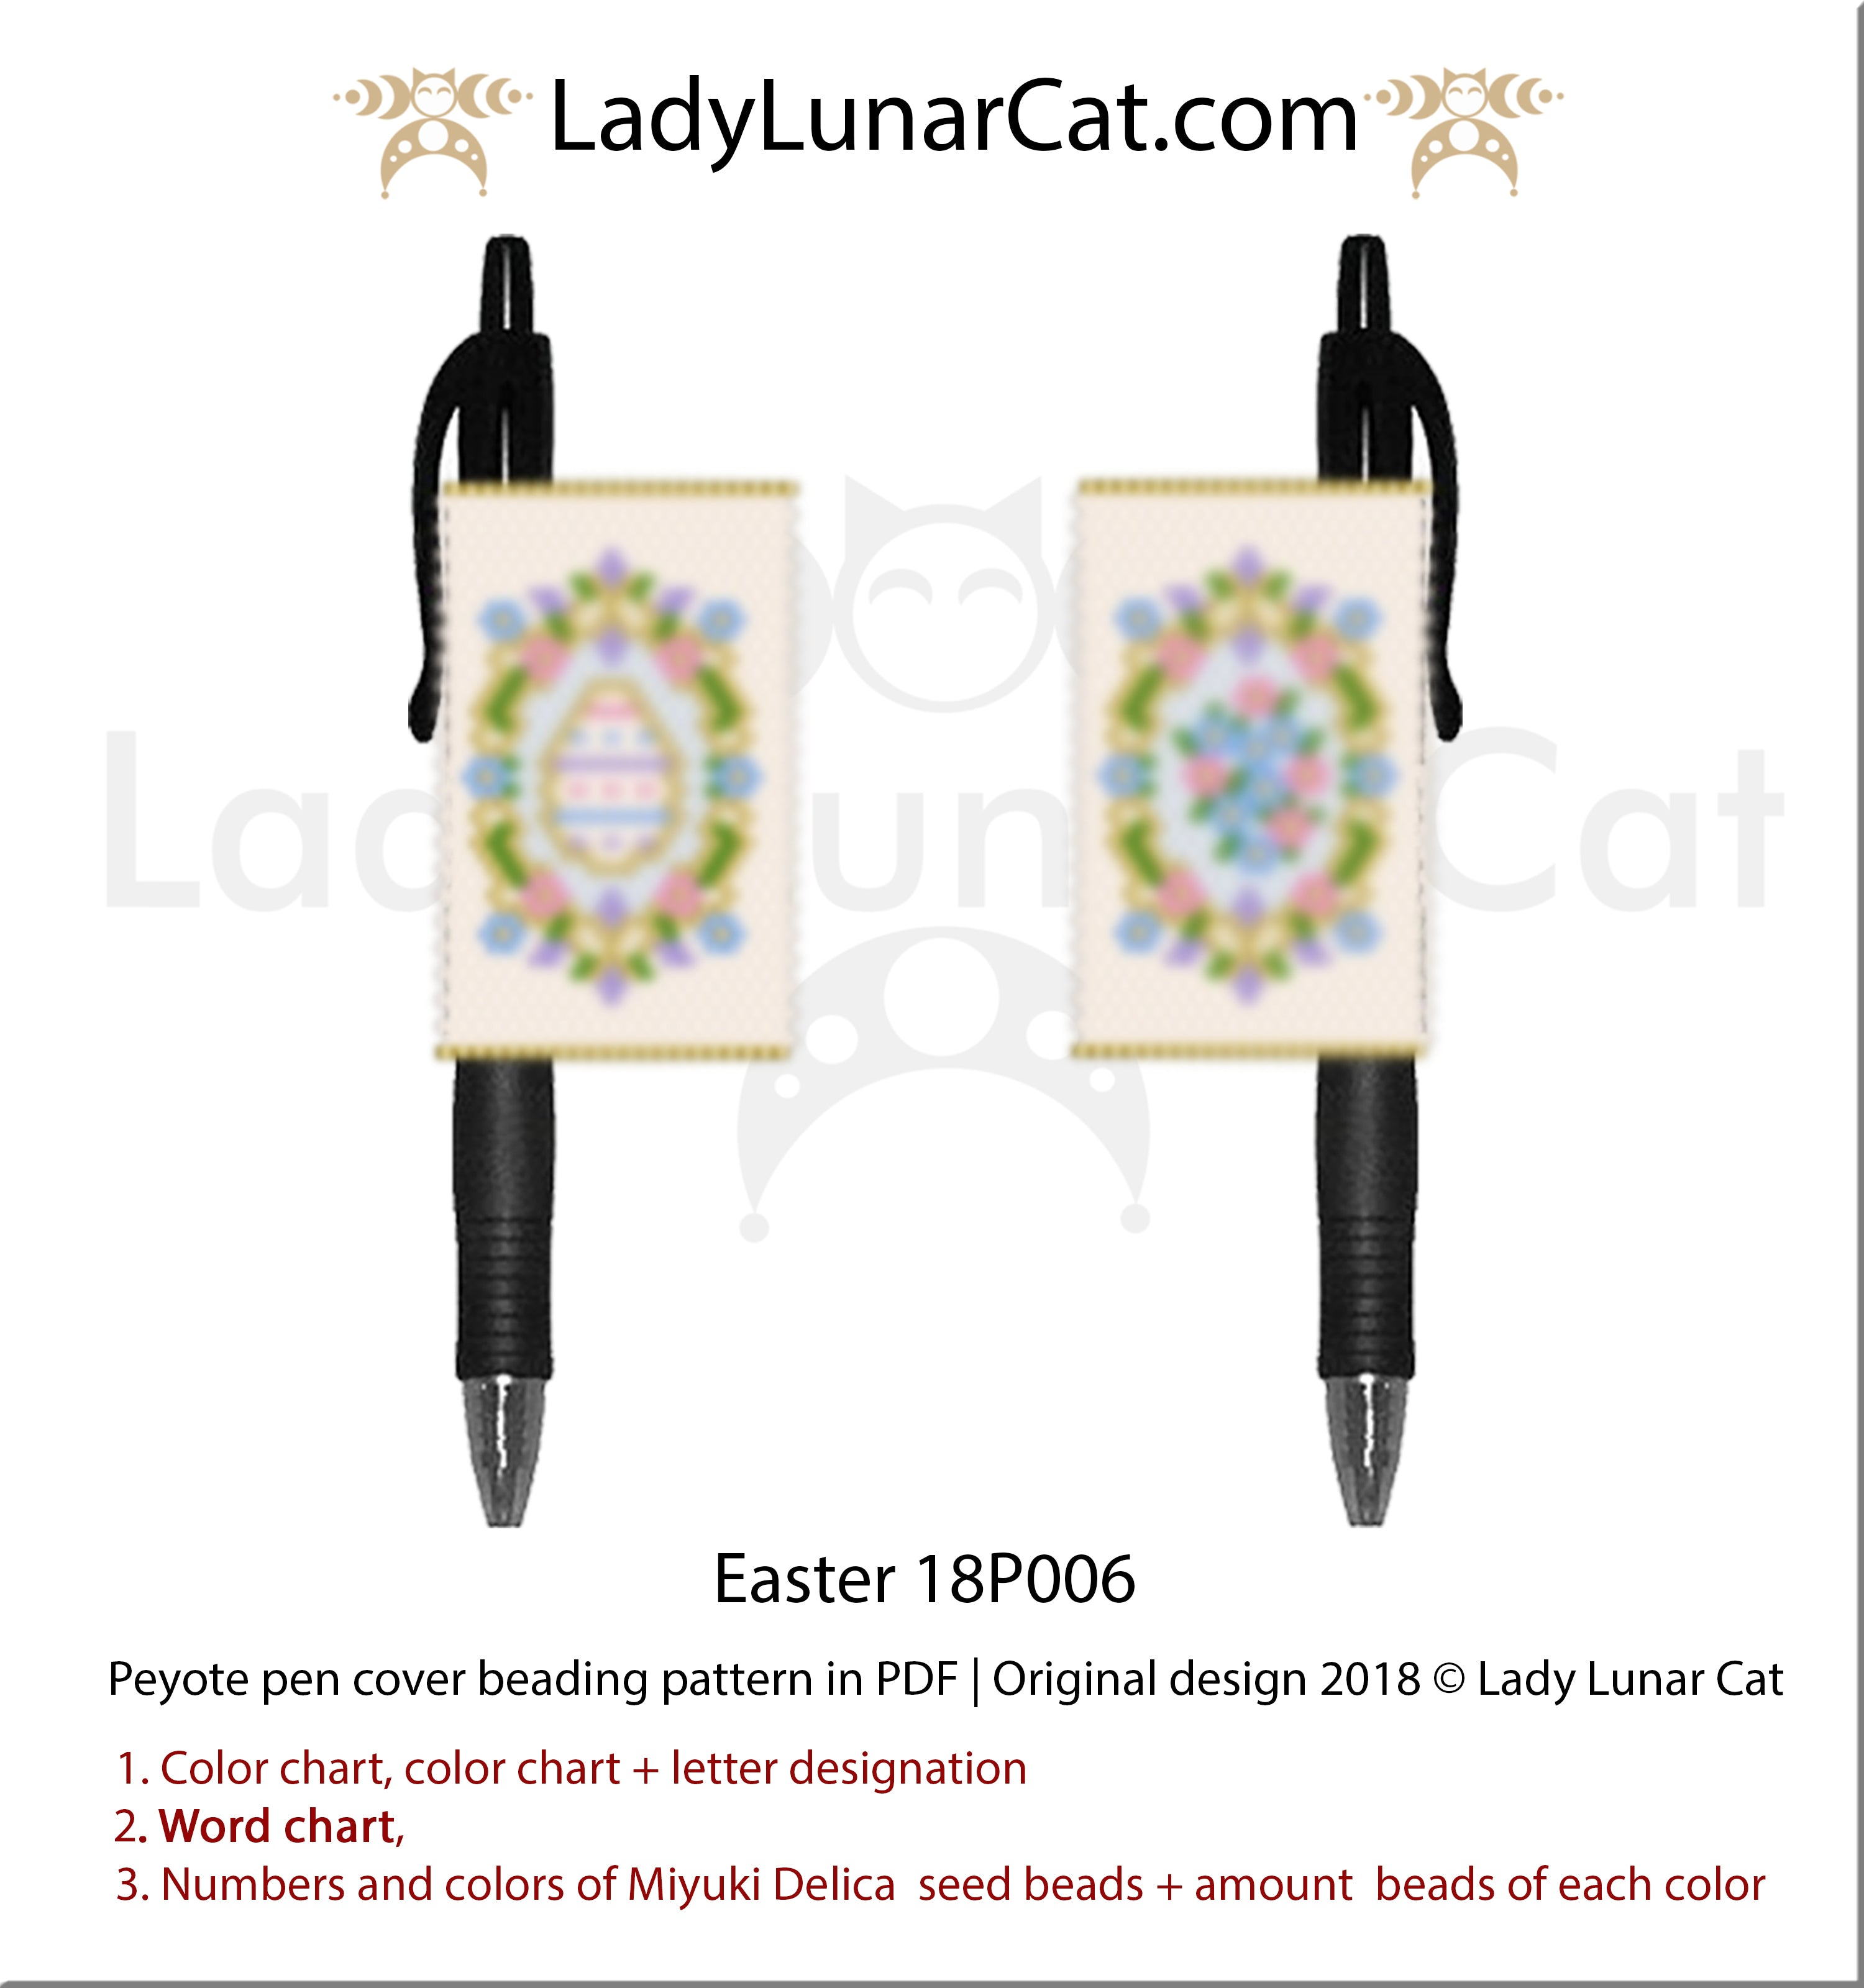 Peyote pen cover pattern for beading | Beaded pen wrap and rings tutorial Easter 18P006 by Lady Lunar Cat